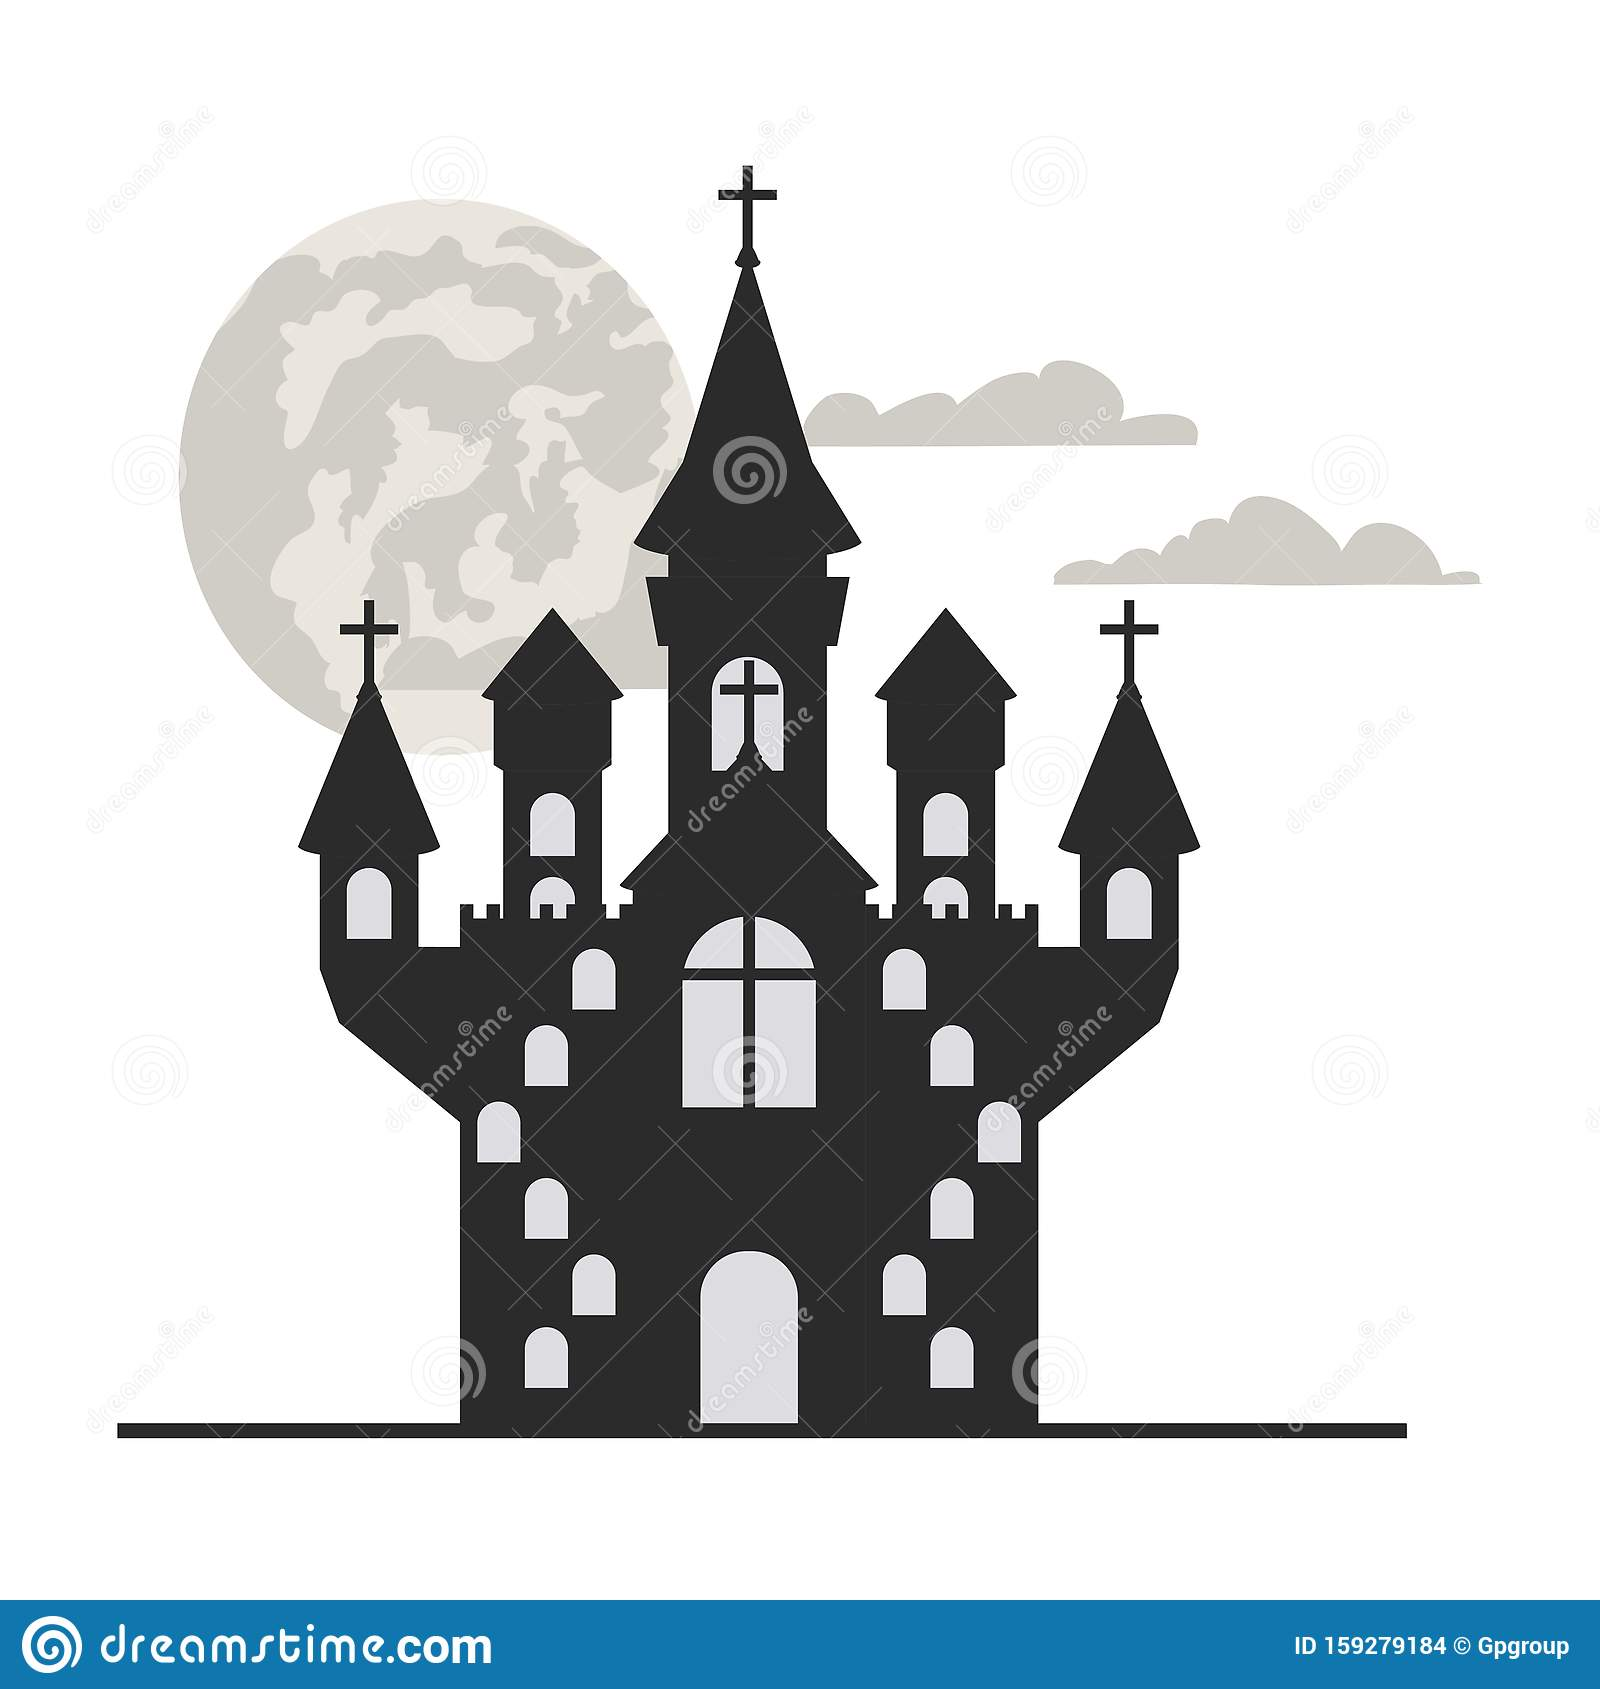 Scary Halloween Castle On White Background Stock Vector Illustration Of Drawing Event 159279184